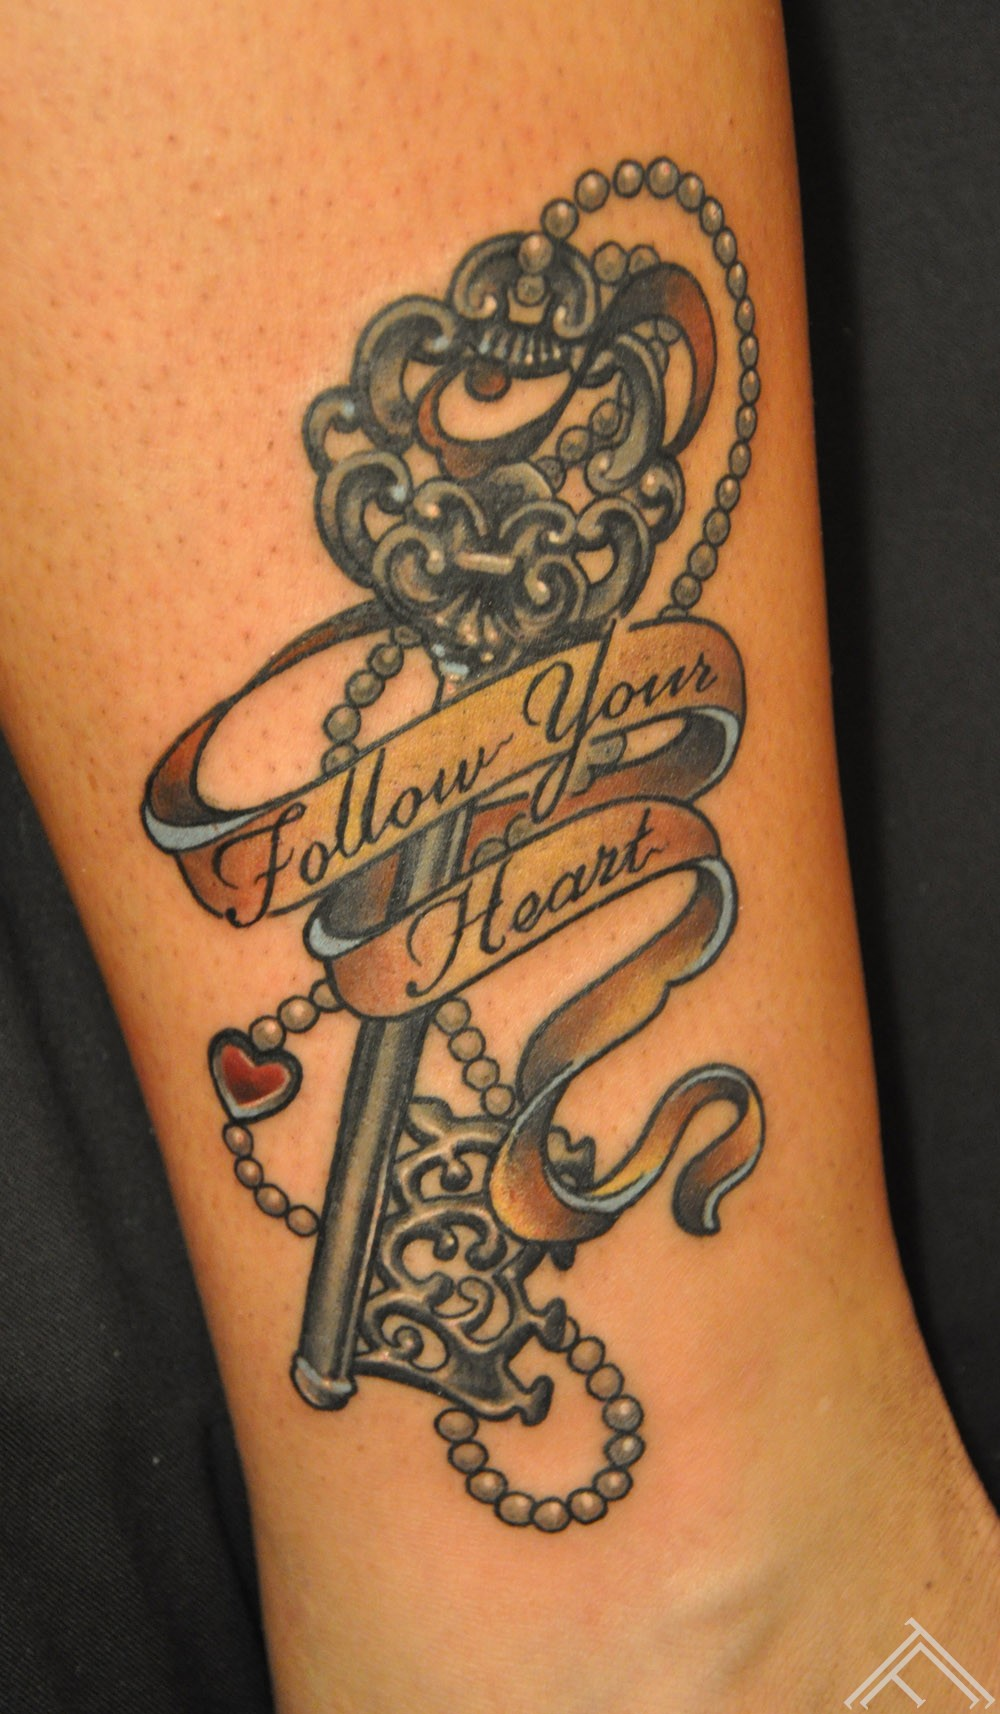 follow_heart_key_newtradicional_tattoo_tattoofrequency_tattoostudio_riga